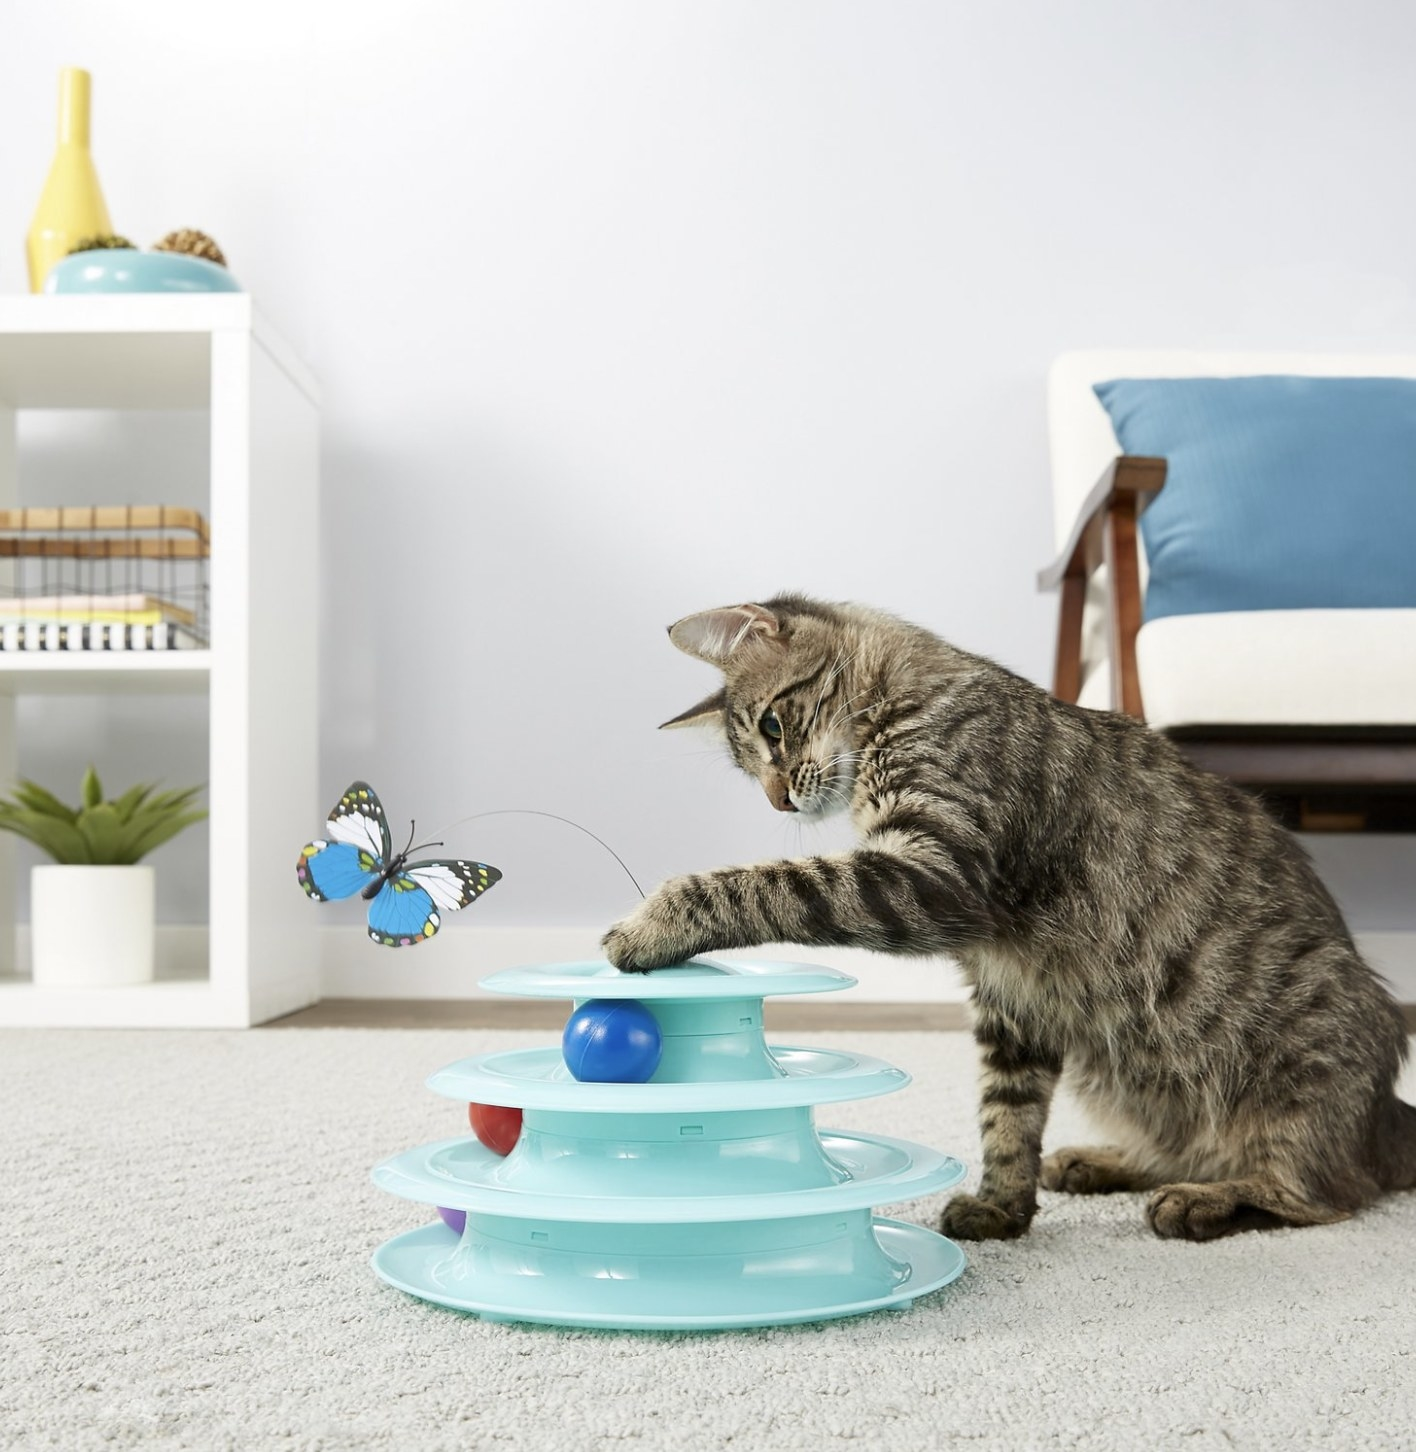 A cat is playing with a butterfly cat toy